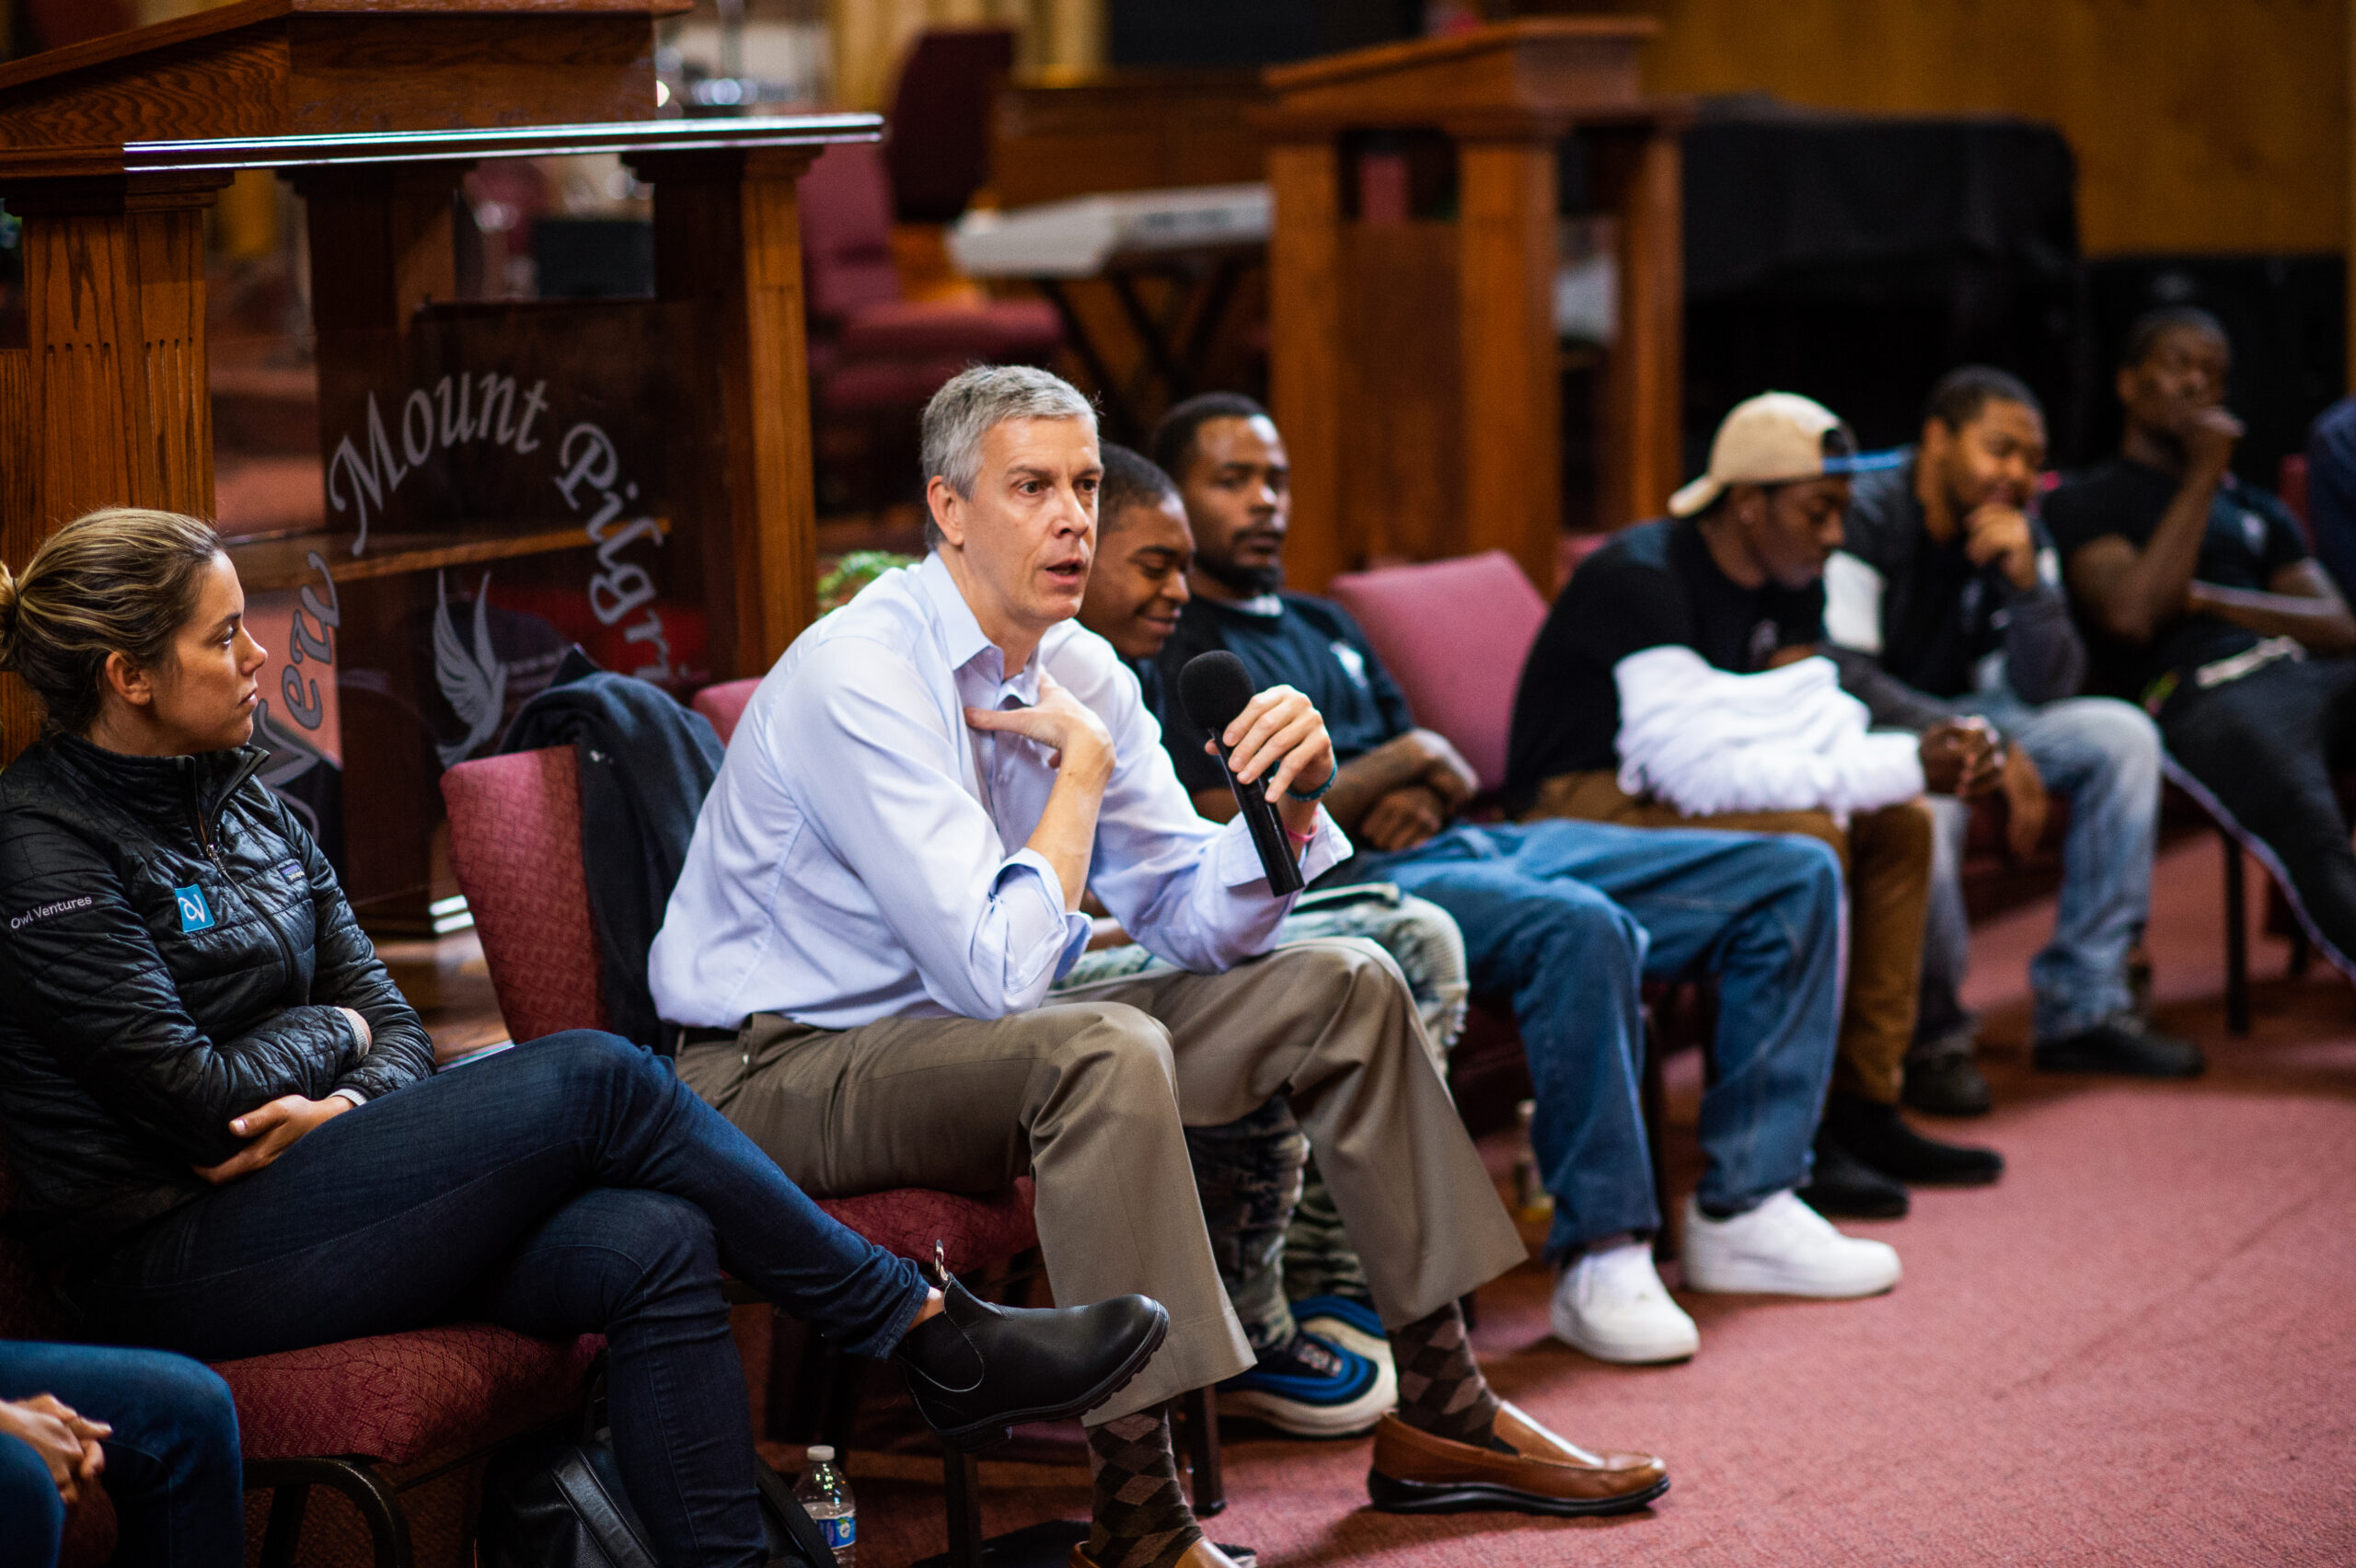 Arne Duncan, former Secretary of Education, holding a microphone addresses a crowd of young men of color.